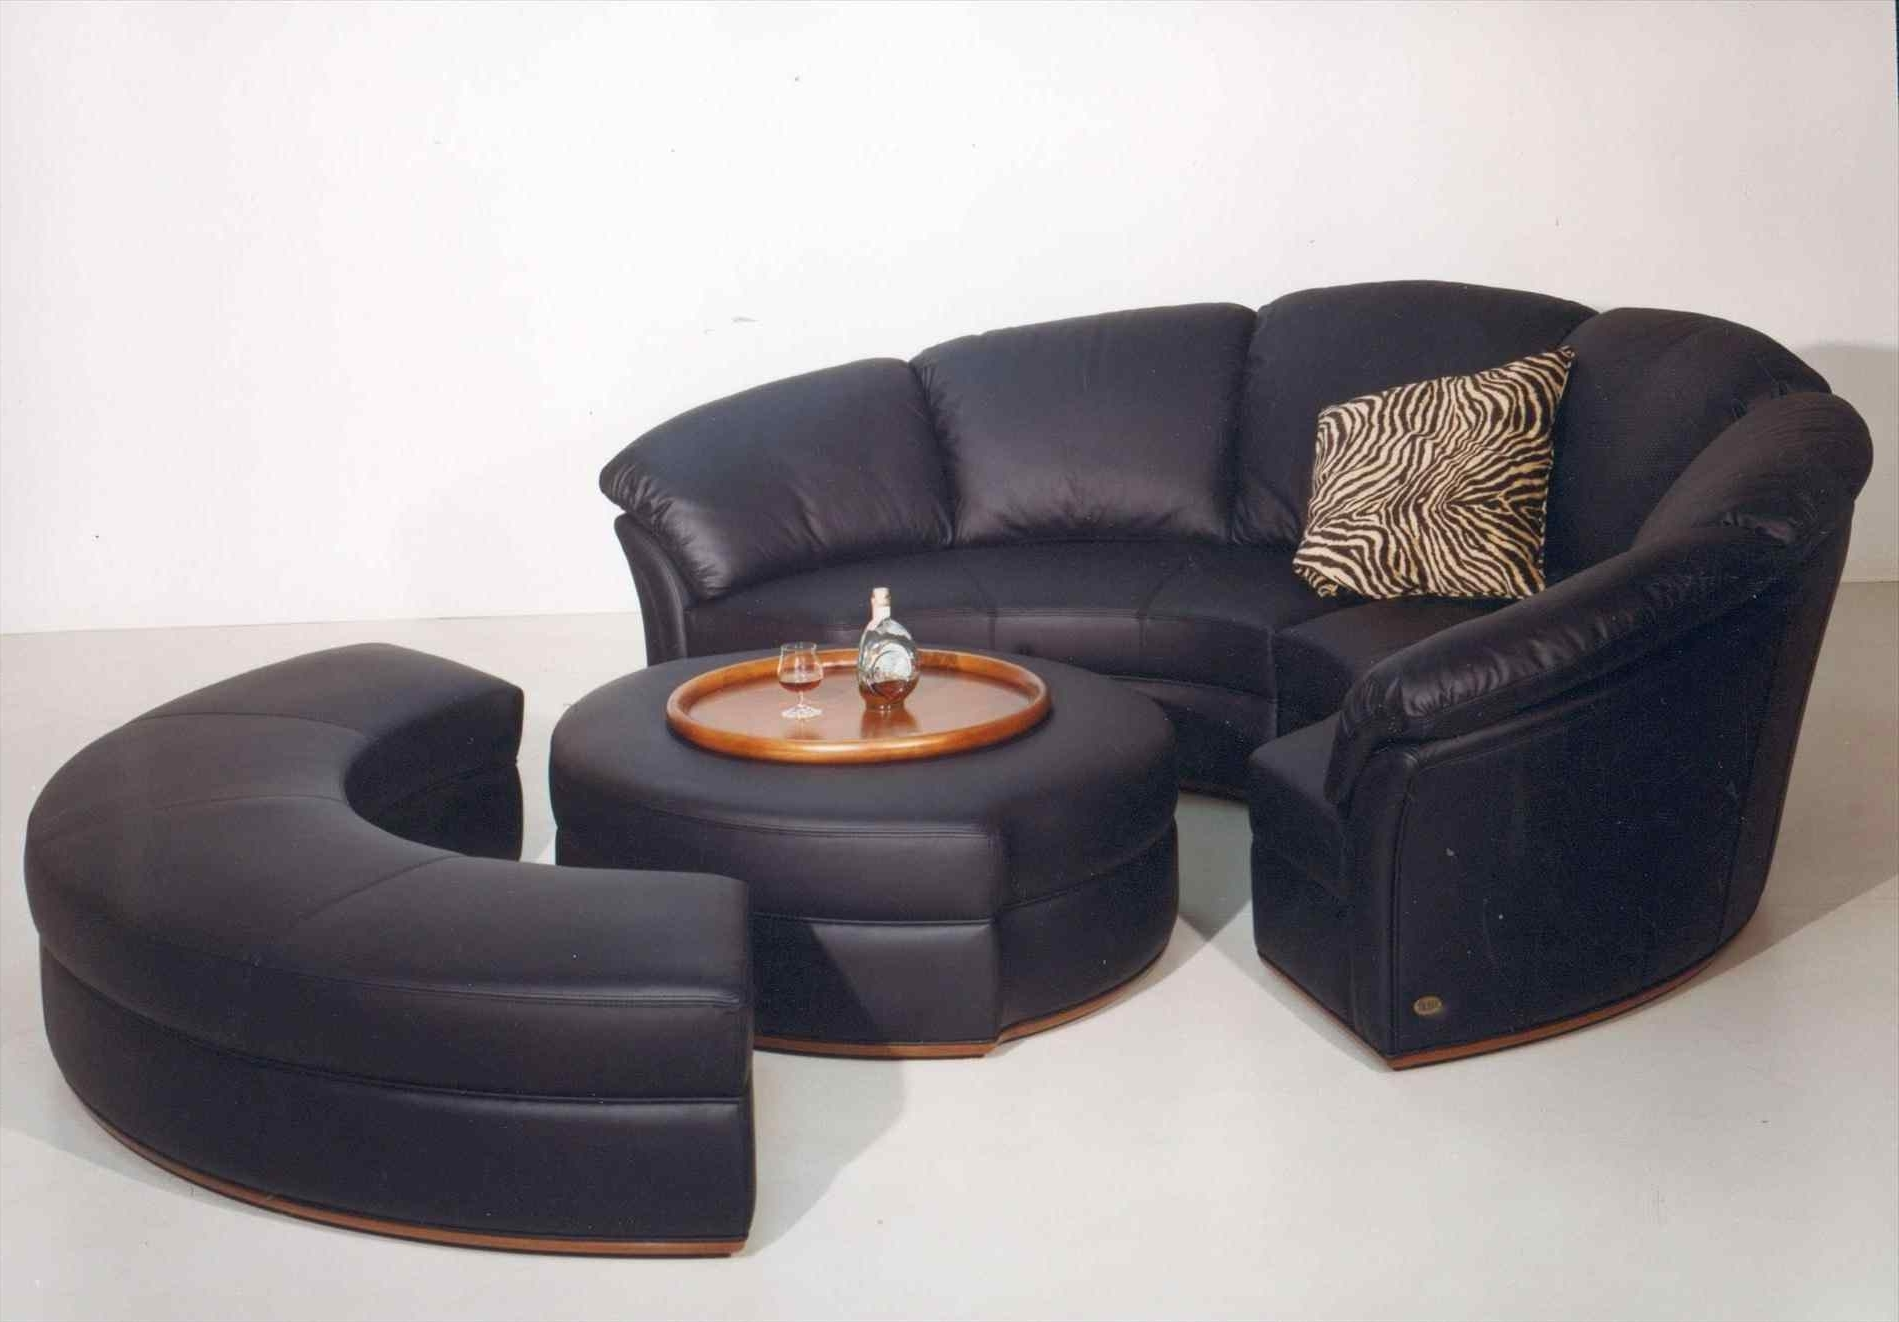 Round Sofas In Well Known Sofas : 3 Seater Sofa Contemporary Sofa Round Couch Chair Circular (View 12 of 20)